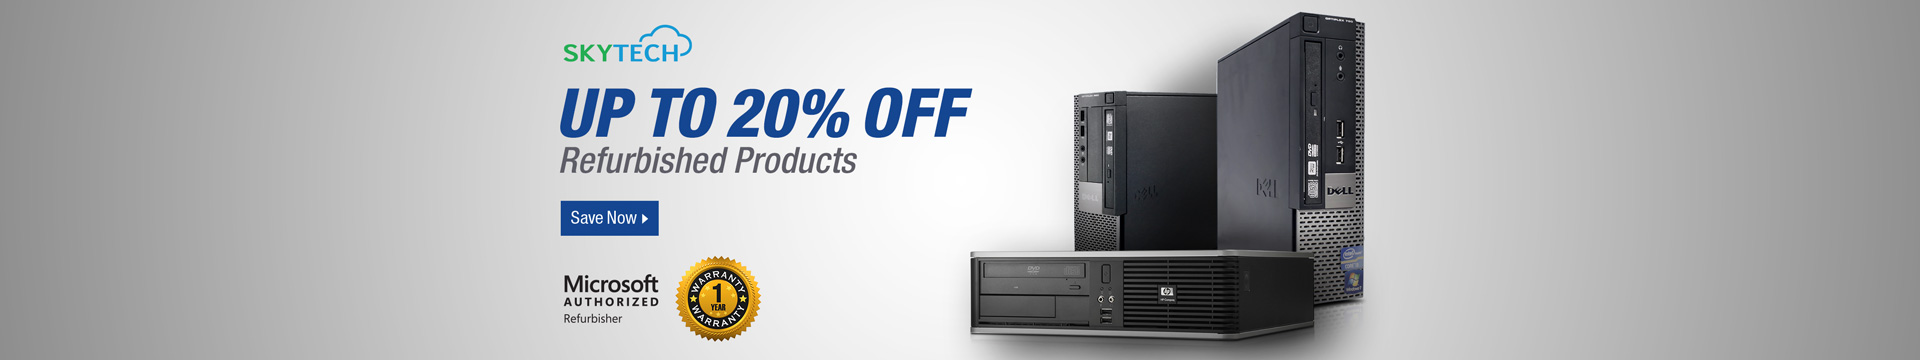 Up to 20% off Refurbished Products